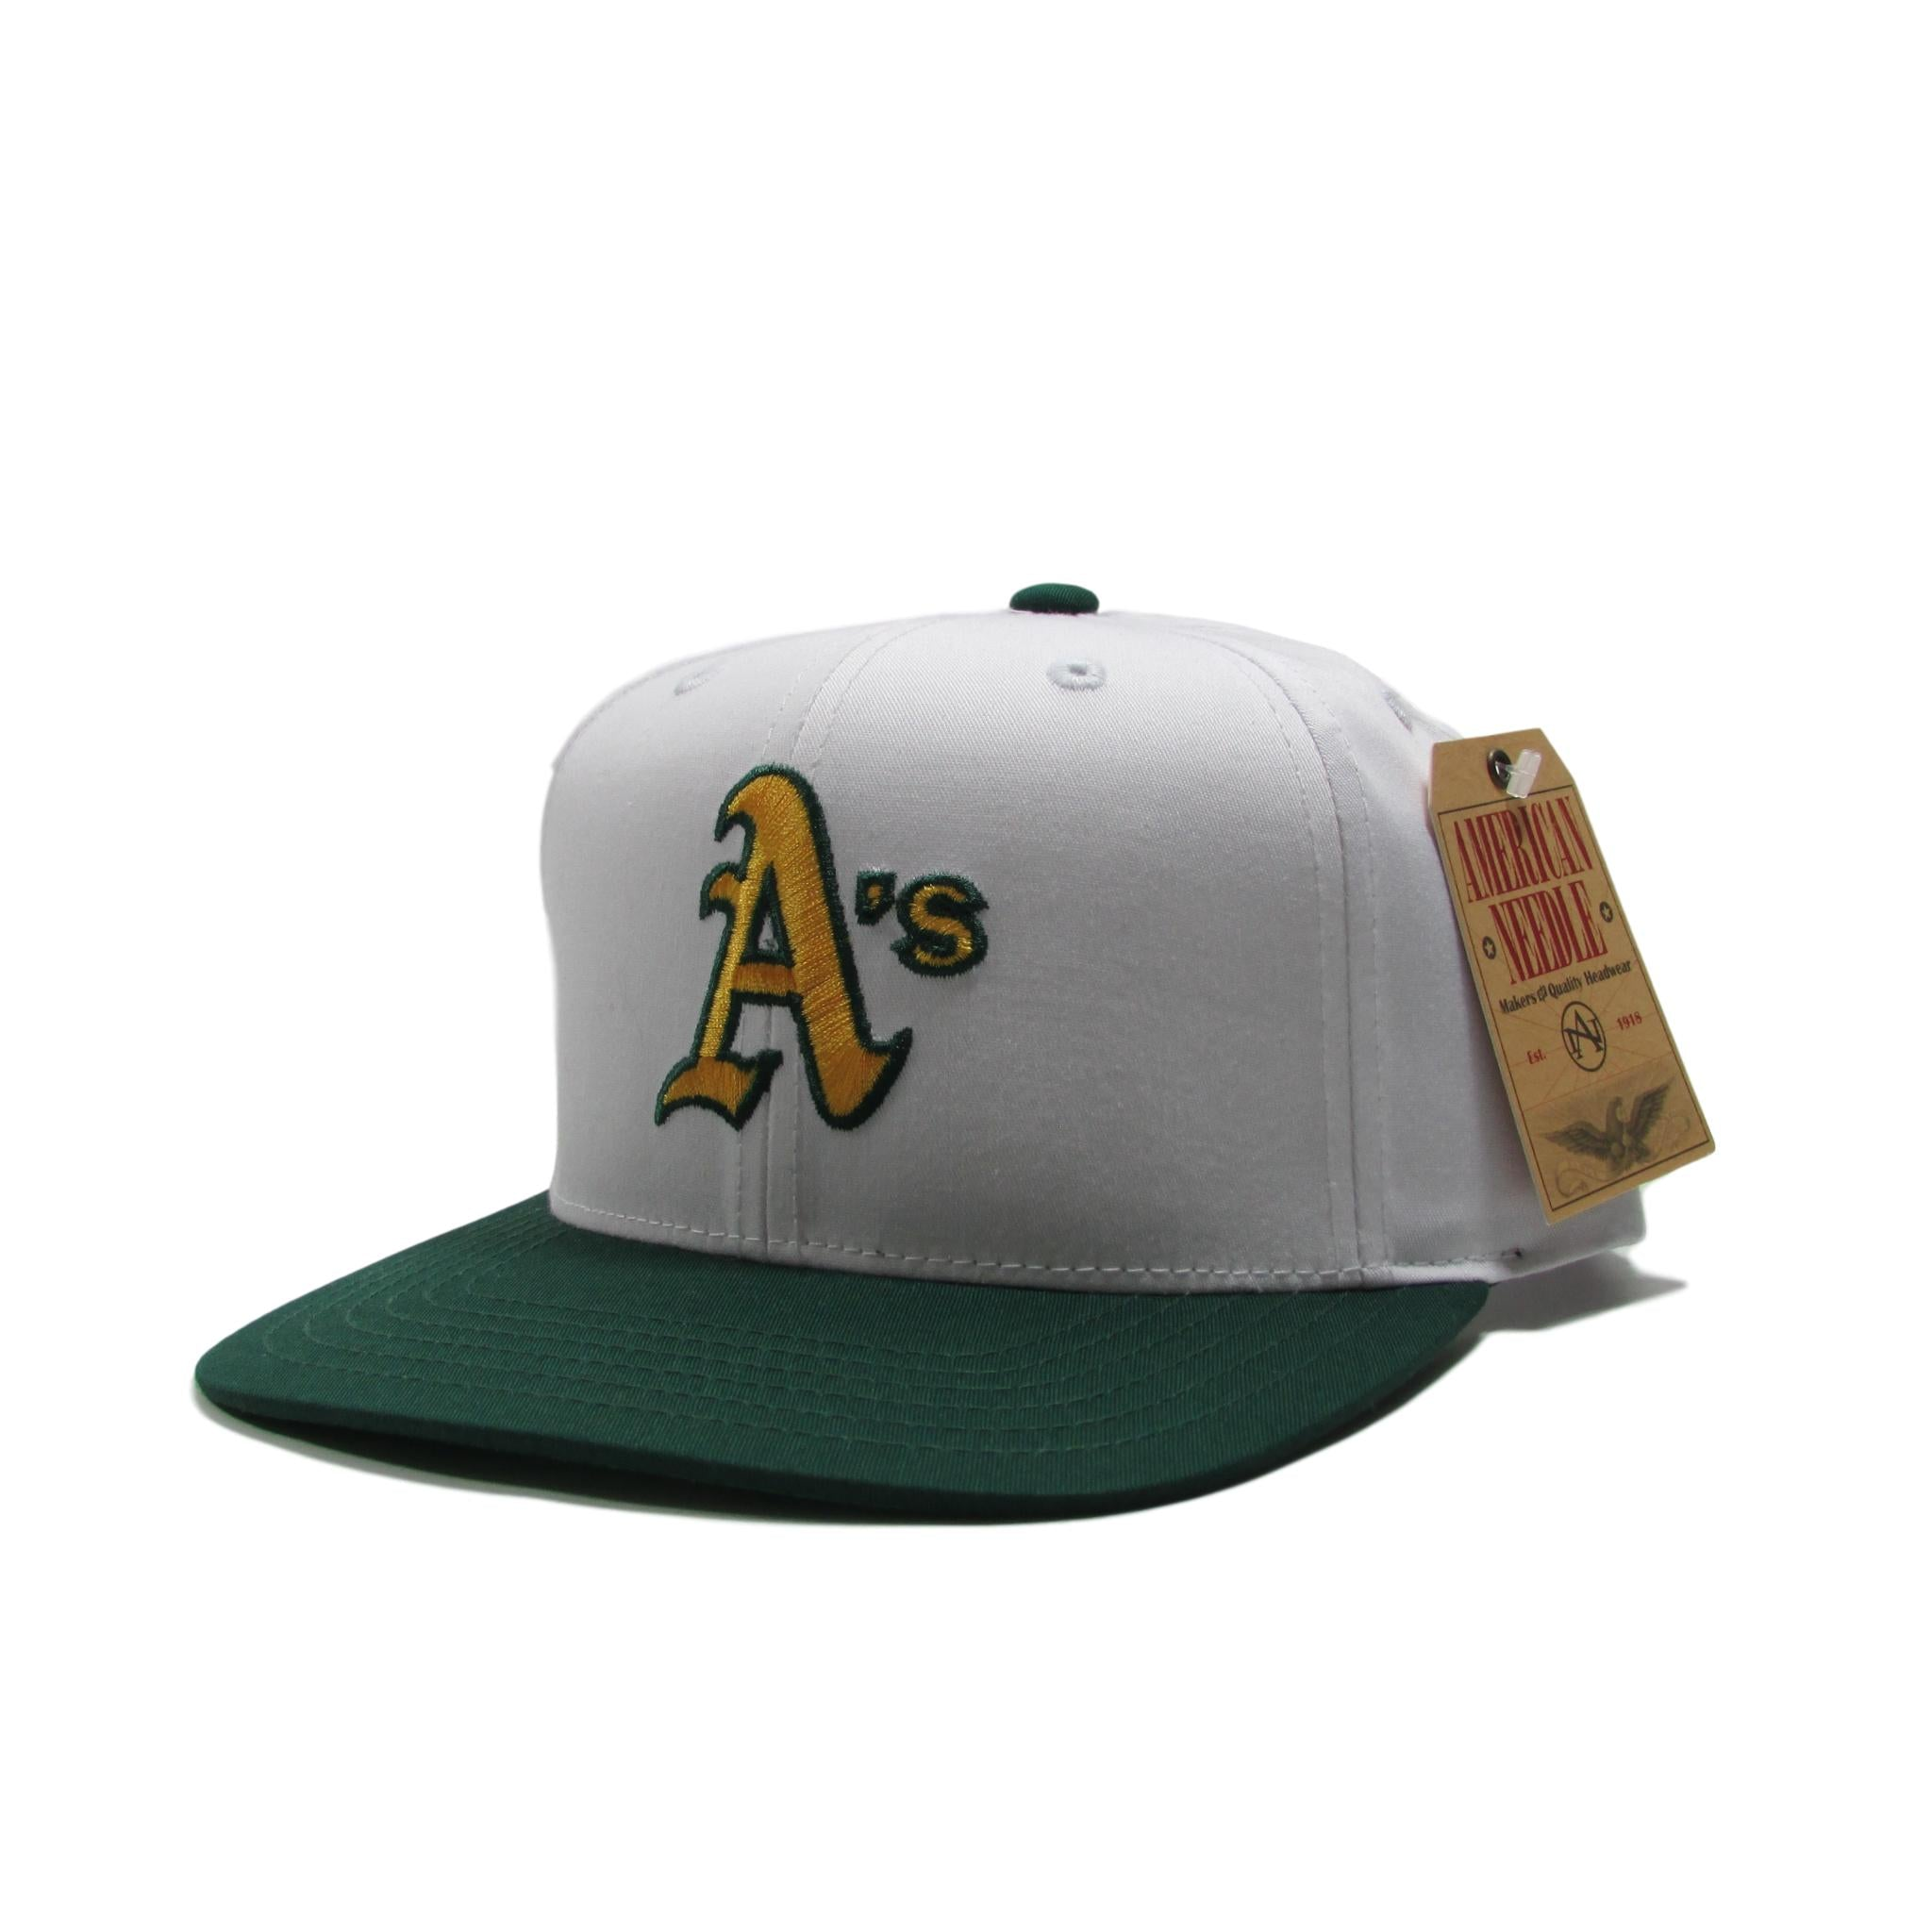 Oakland Athletics White Baseball Snapback Hat American Needle